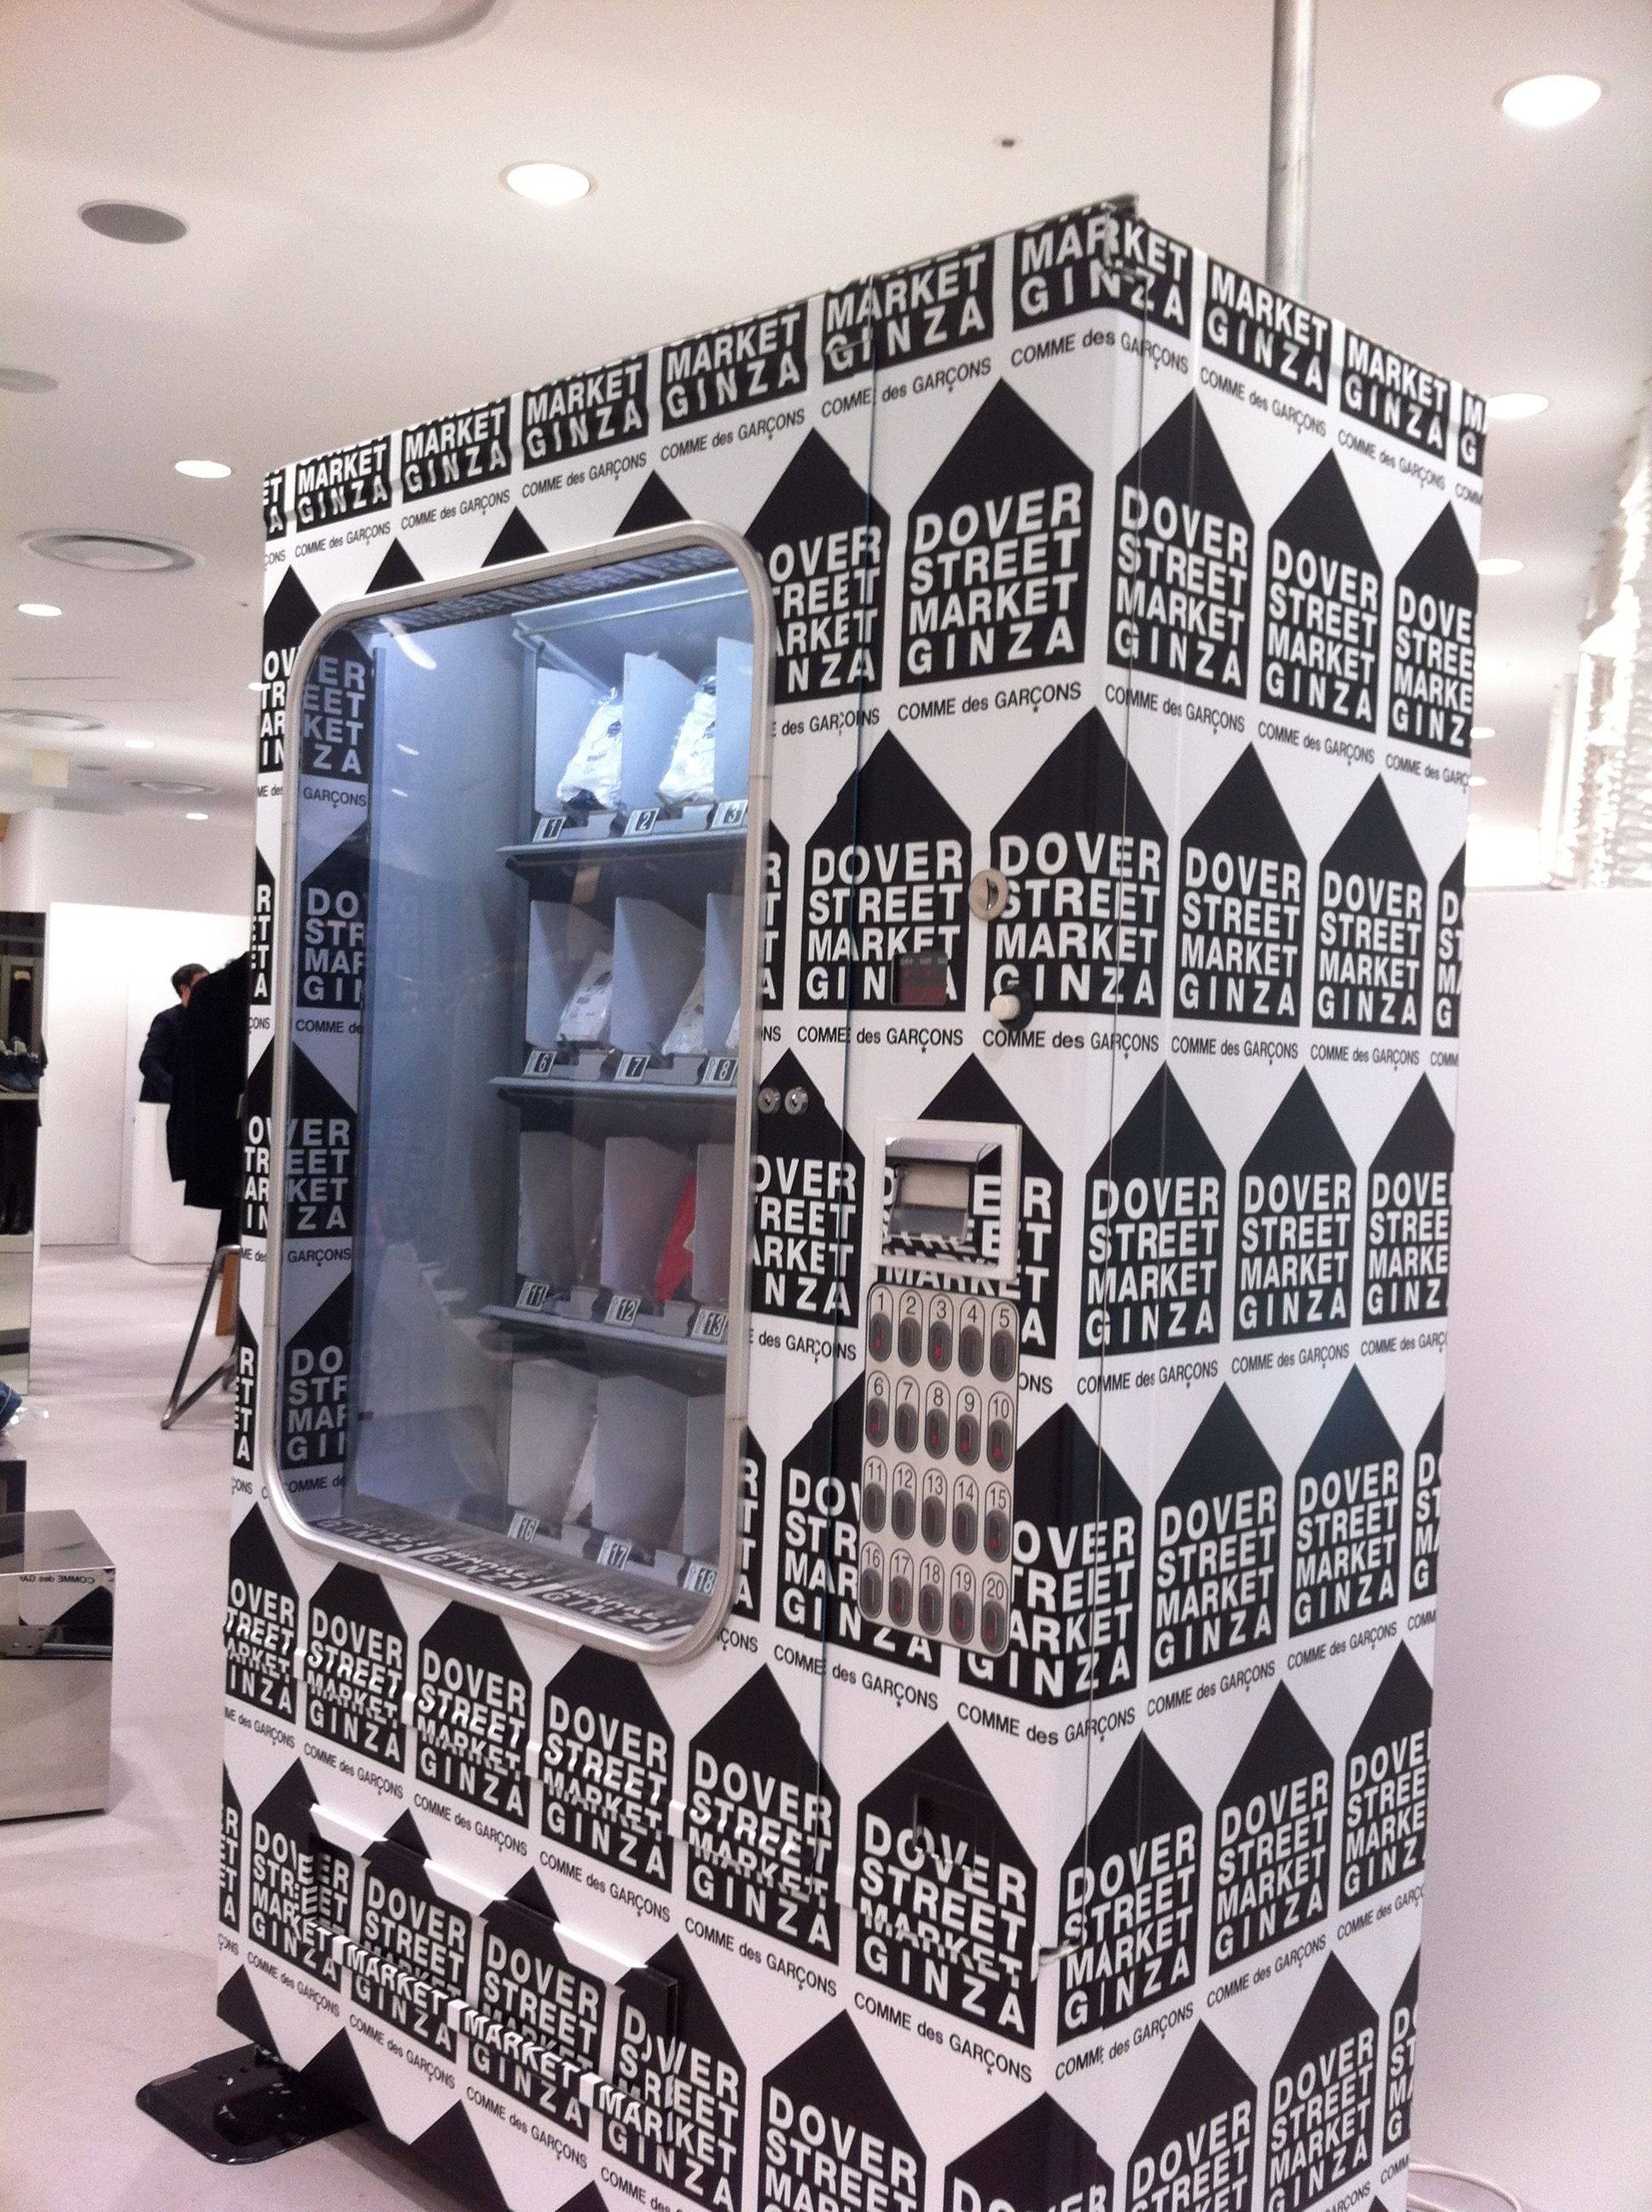 Vending machine at Dover Street Market Ginza